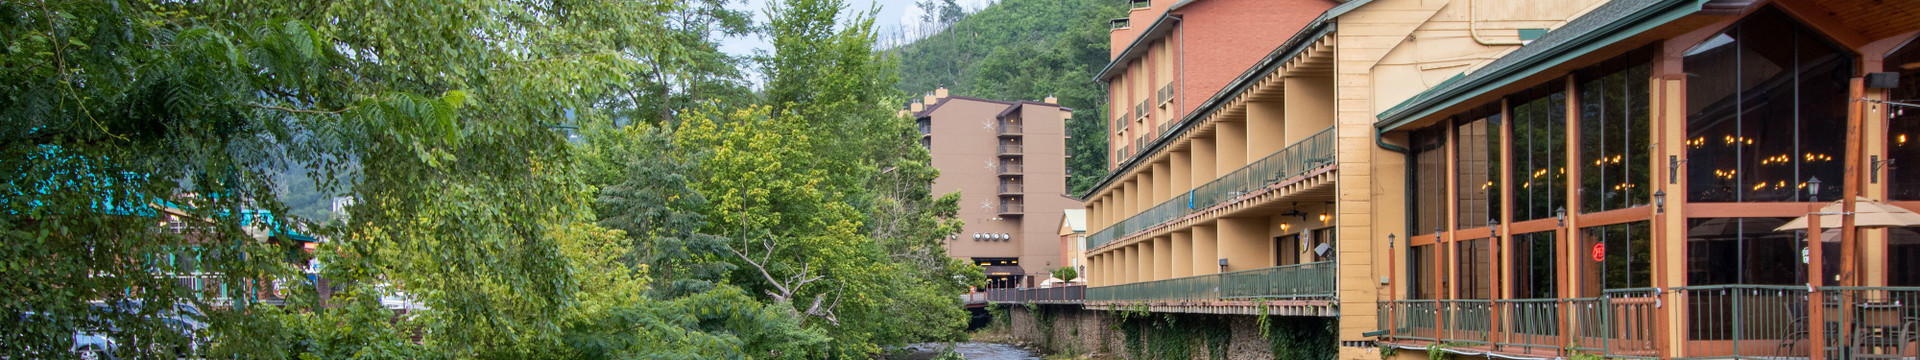 Frequently Asked Questions - FAQs - River Terrace Resort & Convention Center